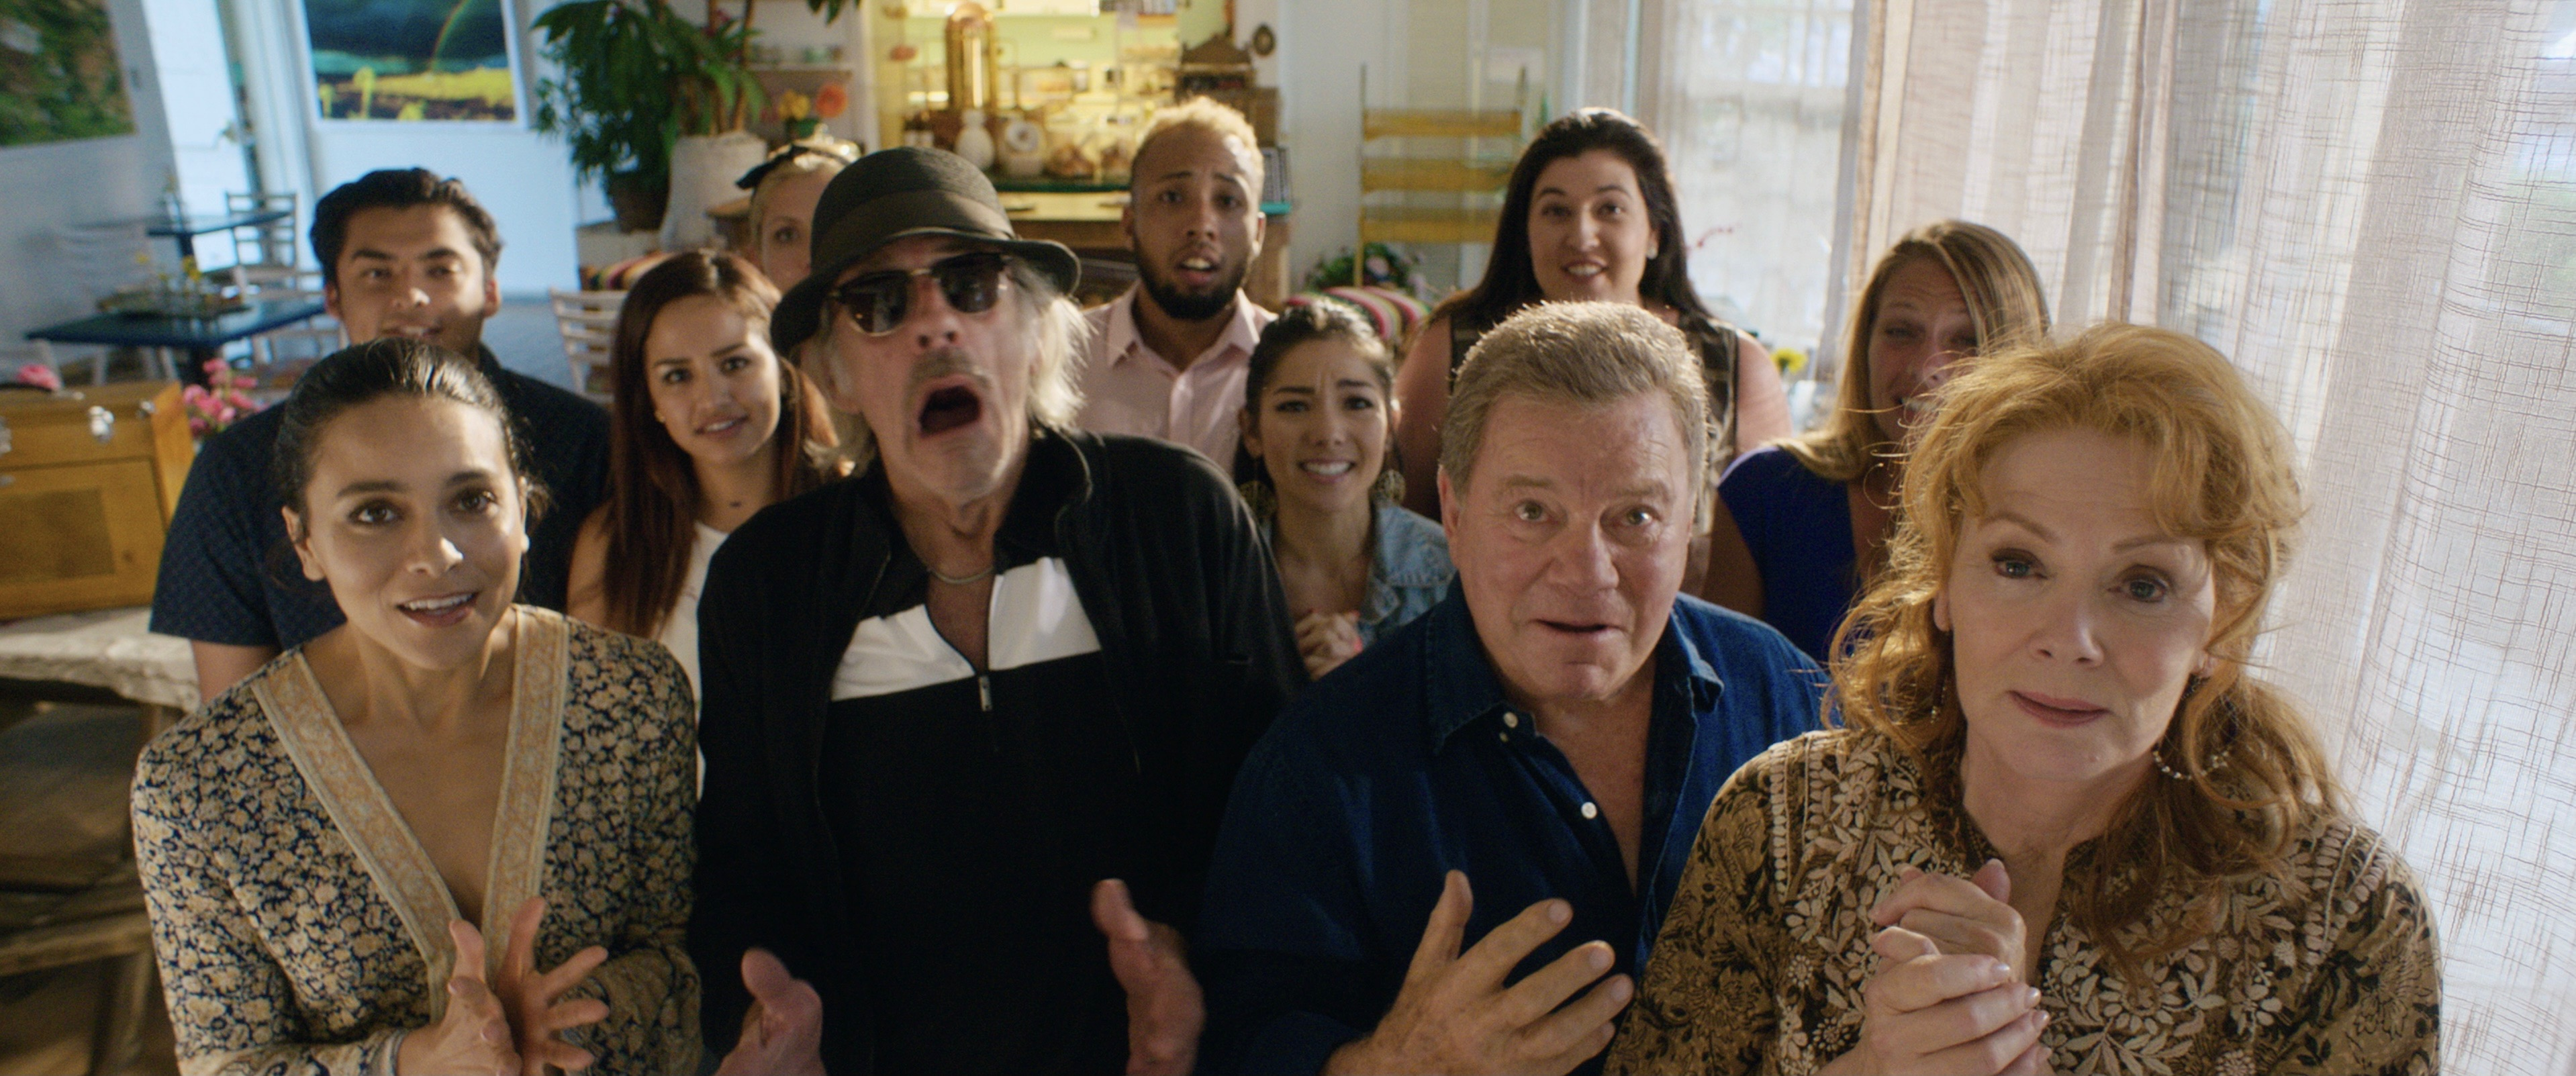 Christopher Lloyd, William Shatner, Jean Smart, and Maya Stojan in Senior Moment (2021)